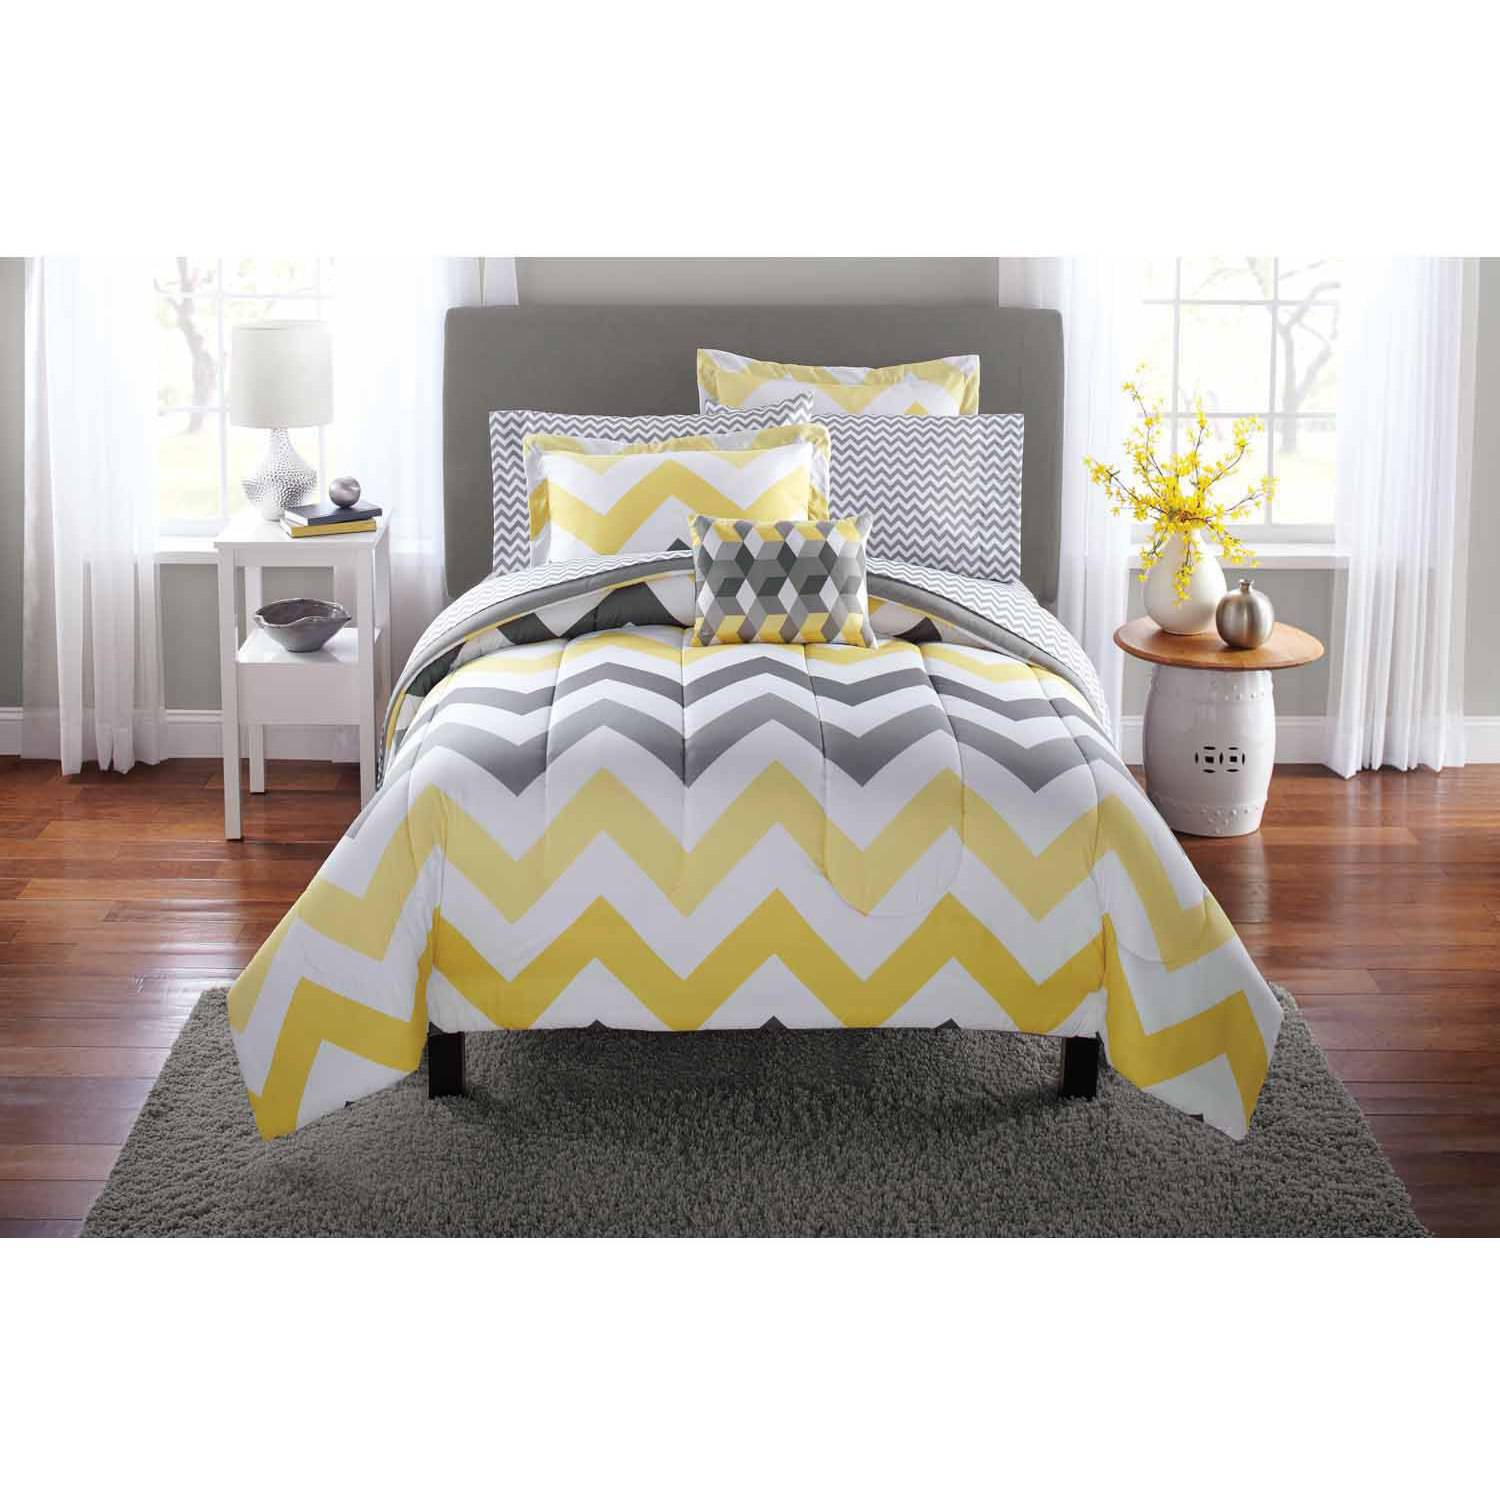 yellow and grey comforter Mainstays Yellow Grey Chevron Bed in a Bag Bedding Comforter Set  yellow and grey comforter